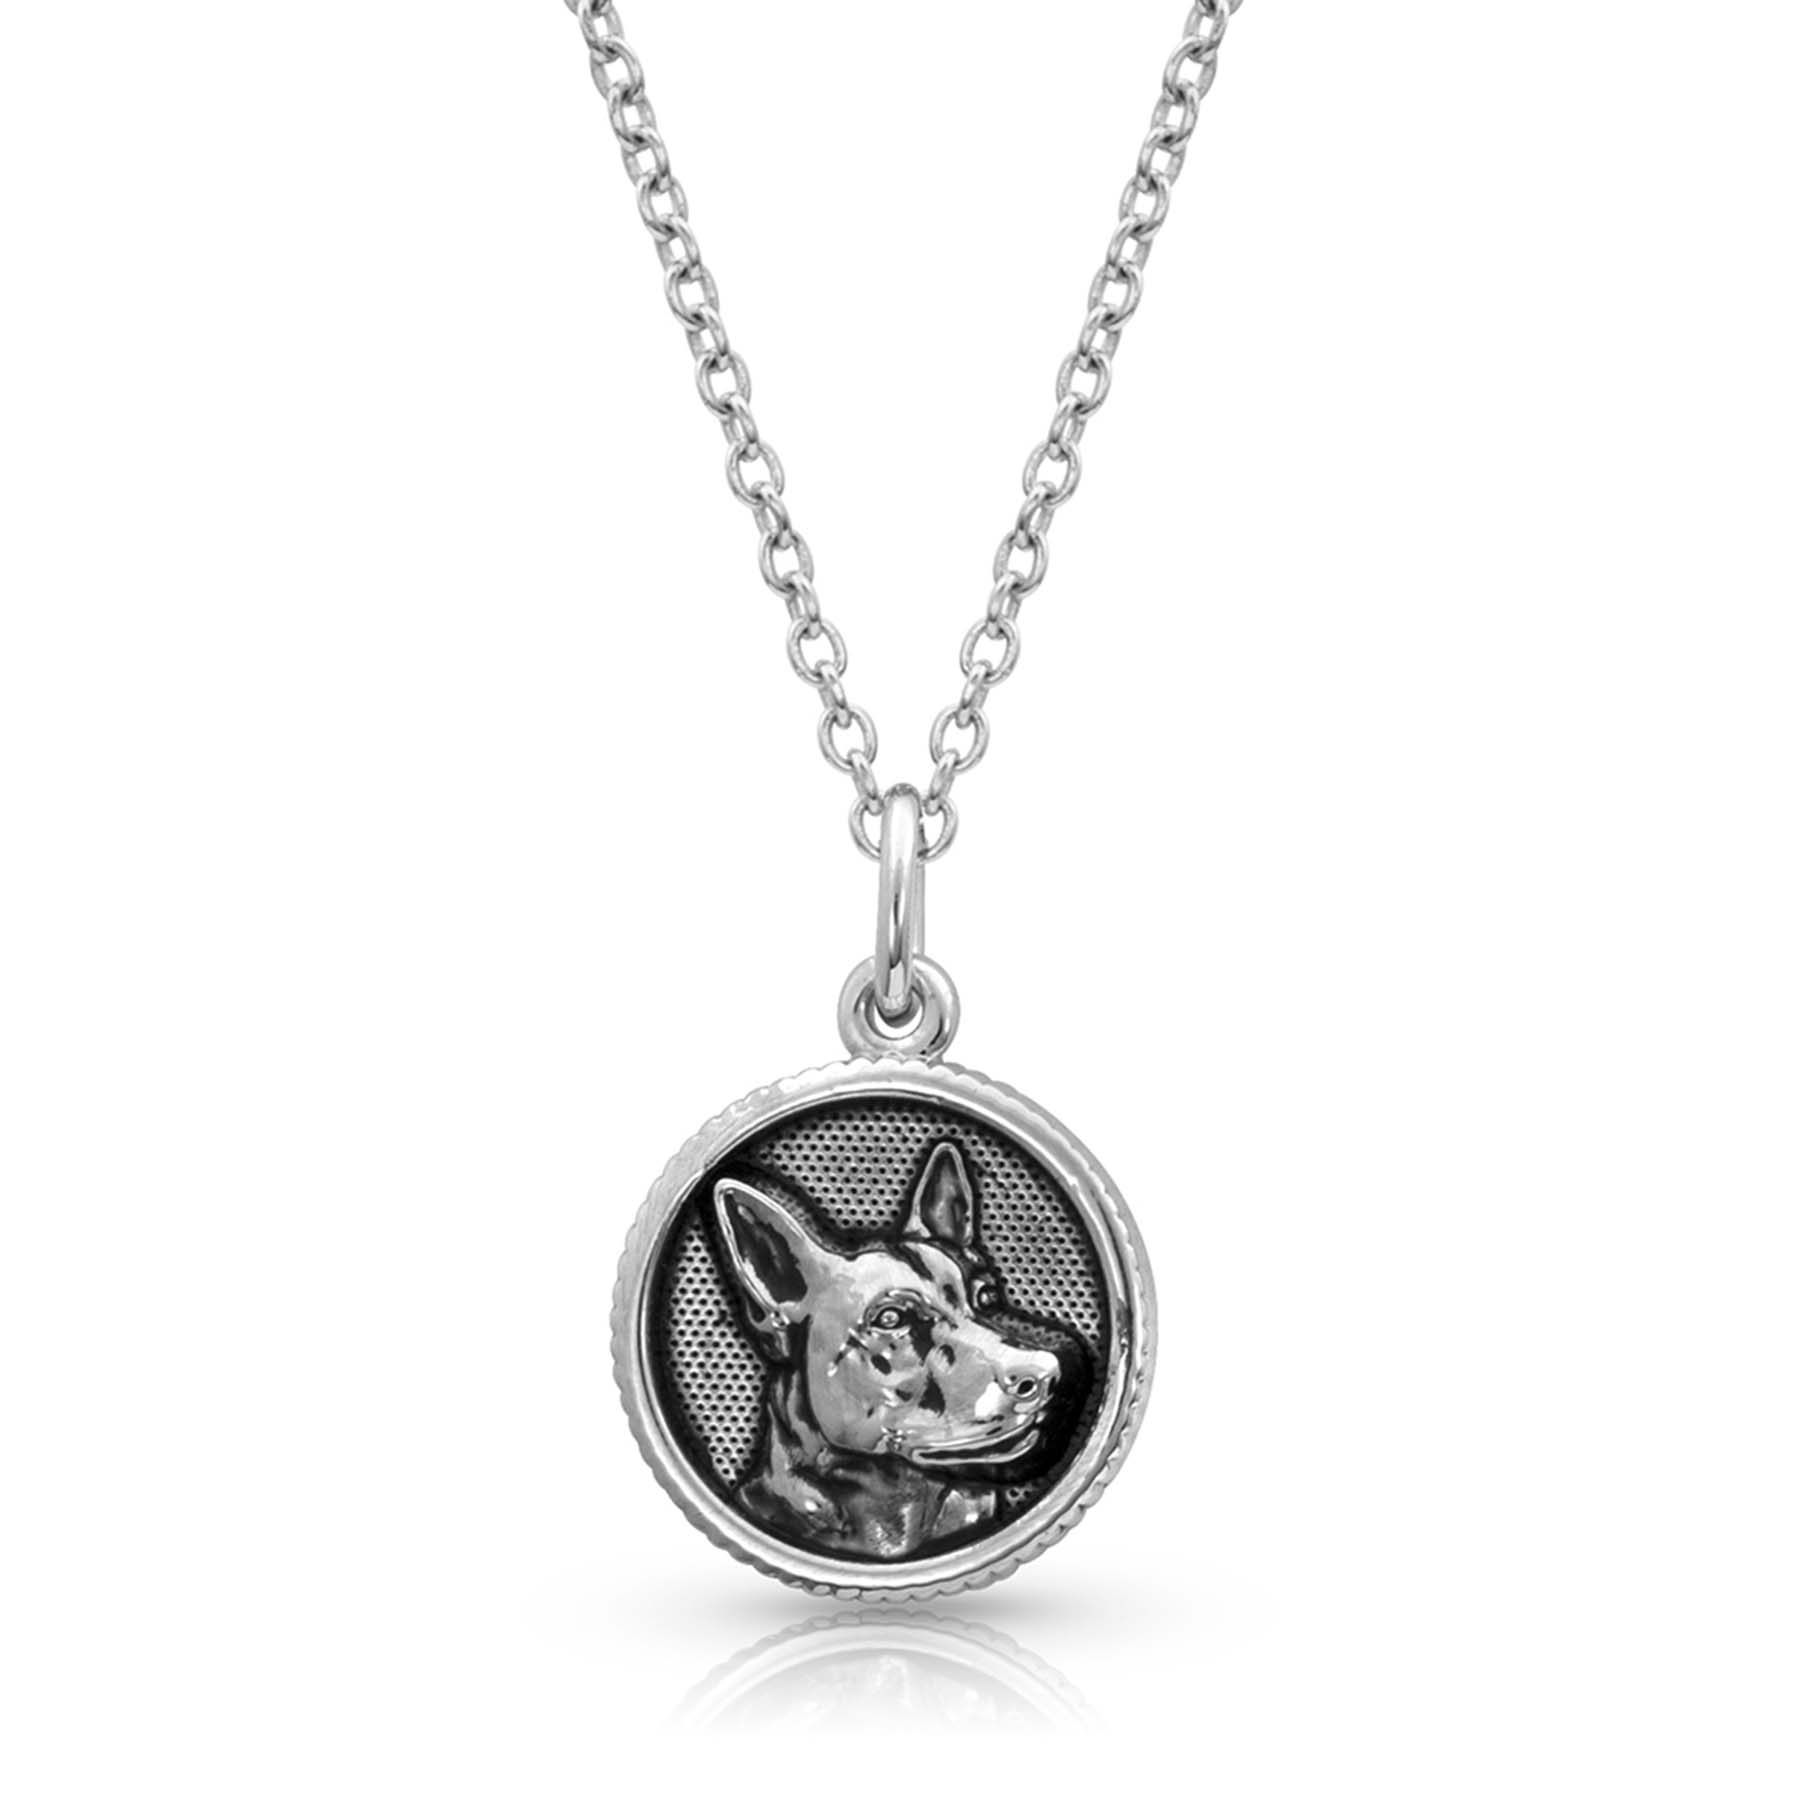 Happy Tails German Shepherd Charm Necklace